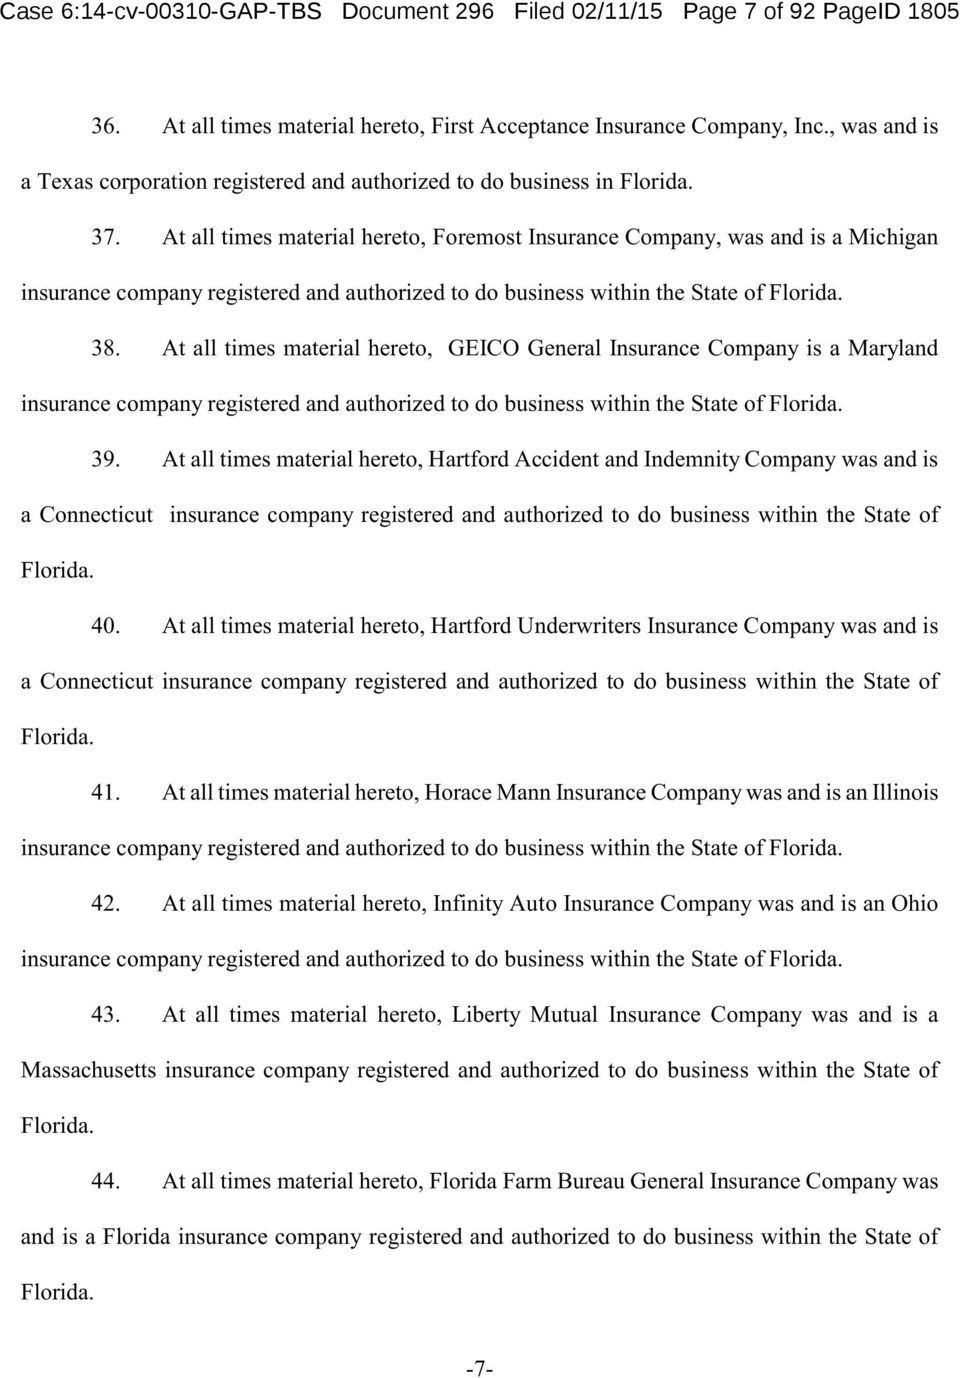 At all times material hereto, Foremost Insurance Company, was and is a Michigan insurance company registered and authorized to do business within the State of Florida. 38.